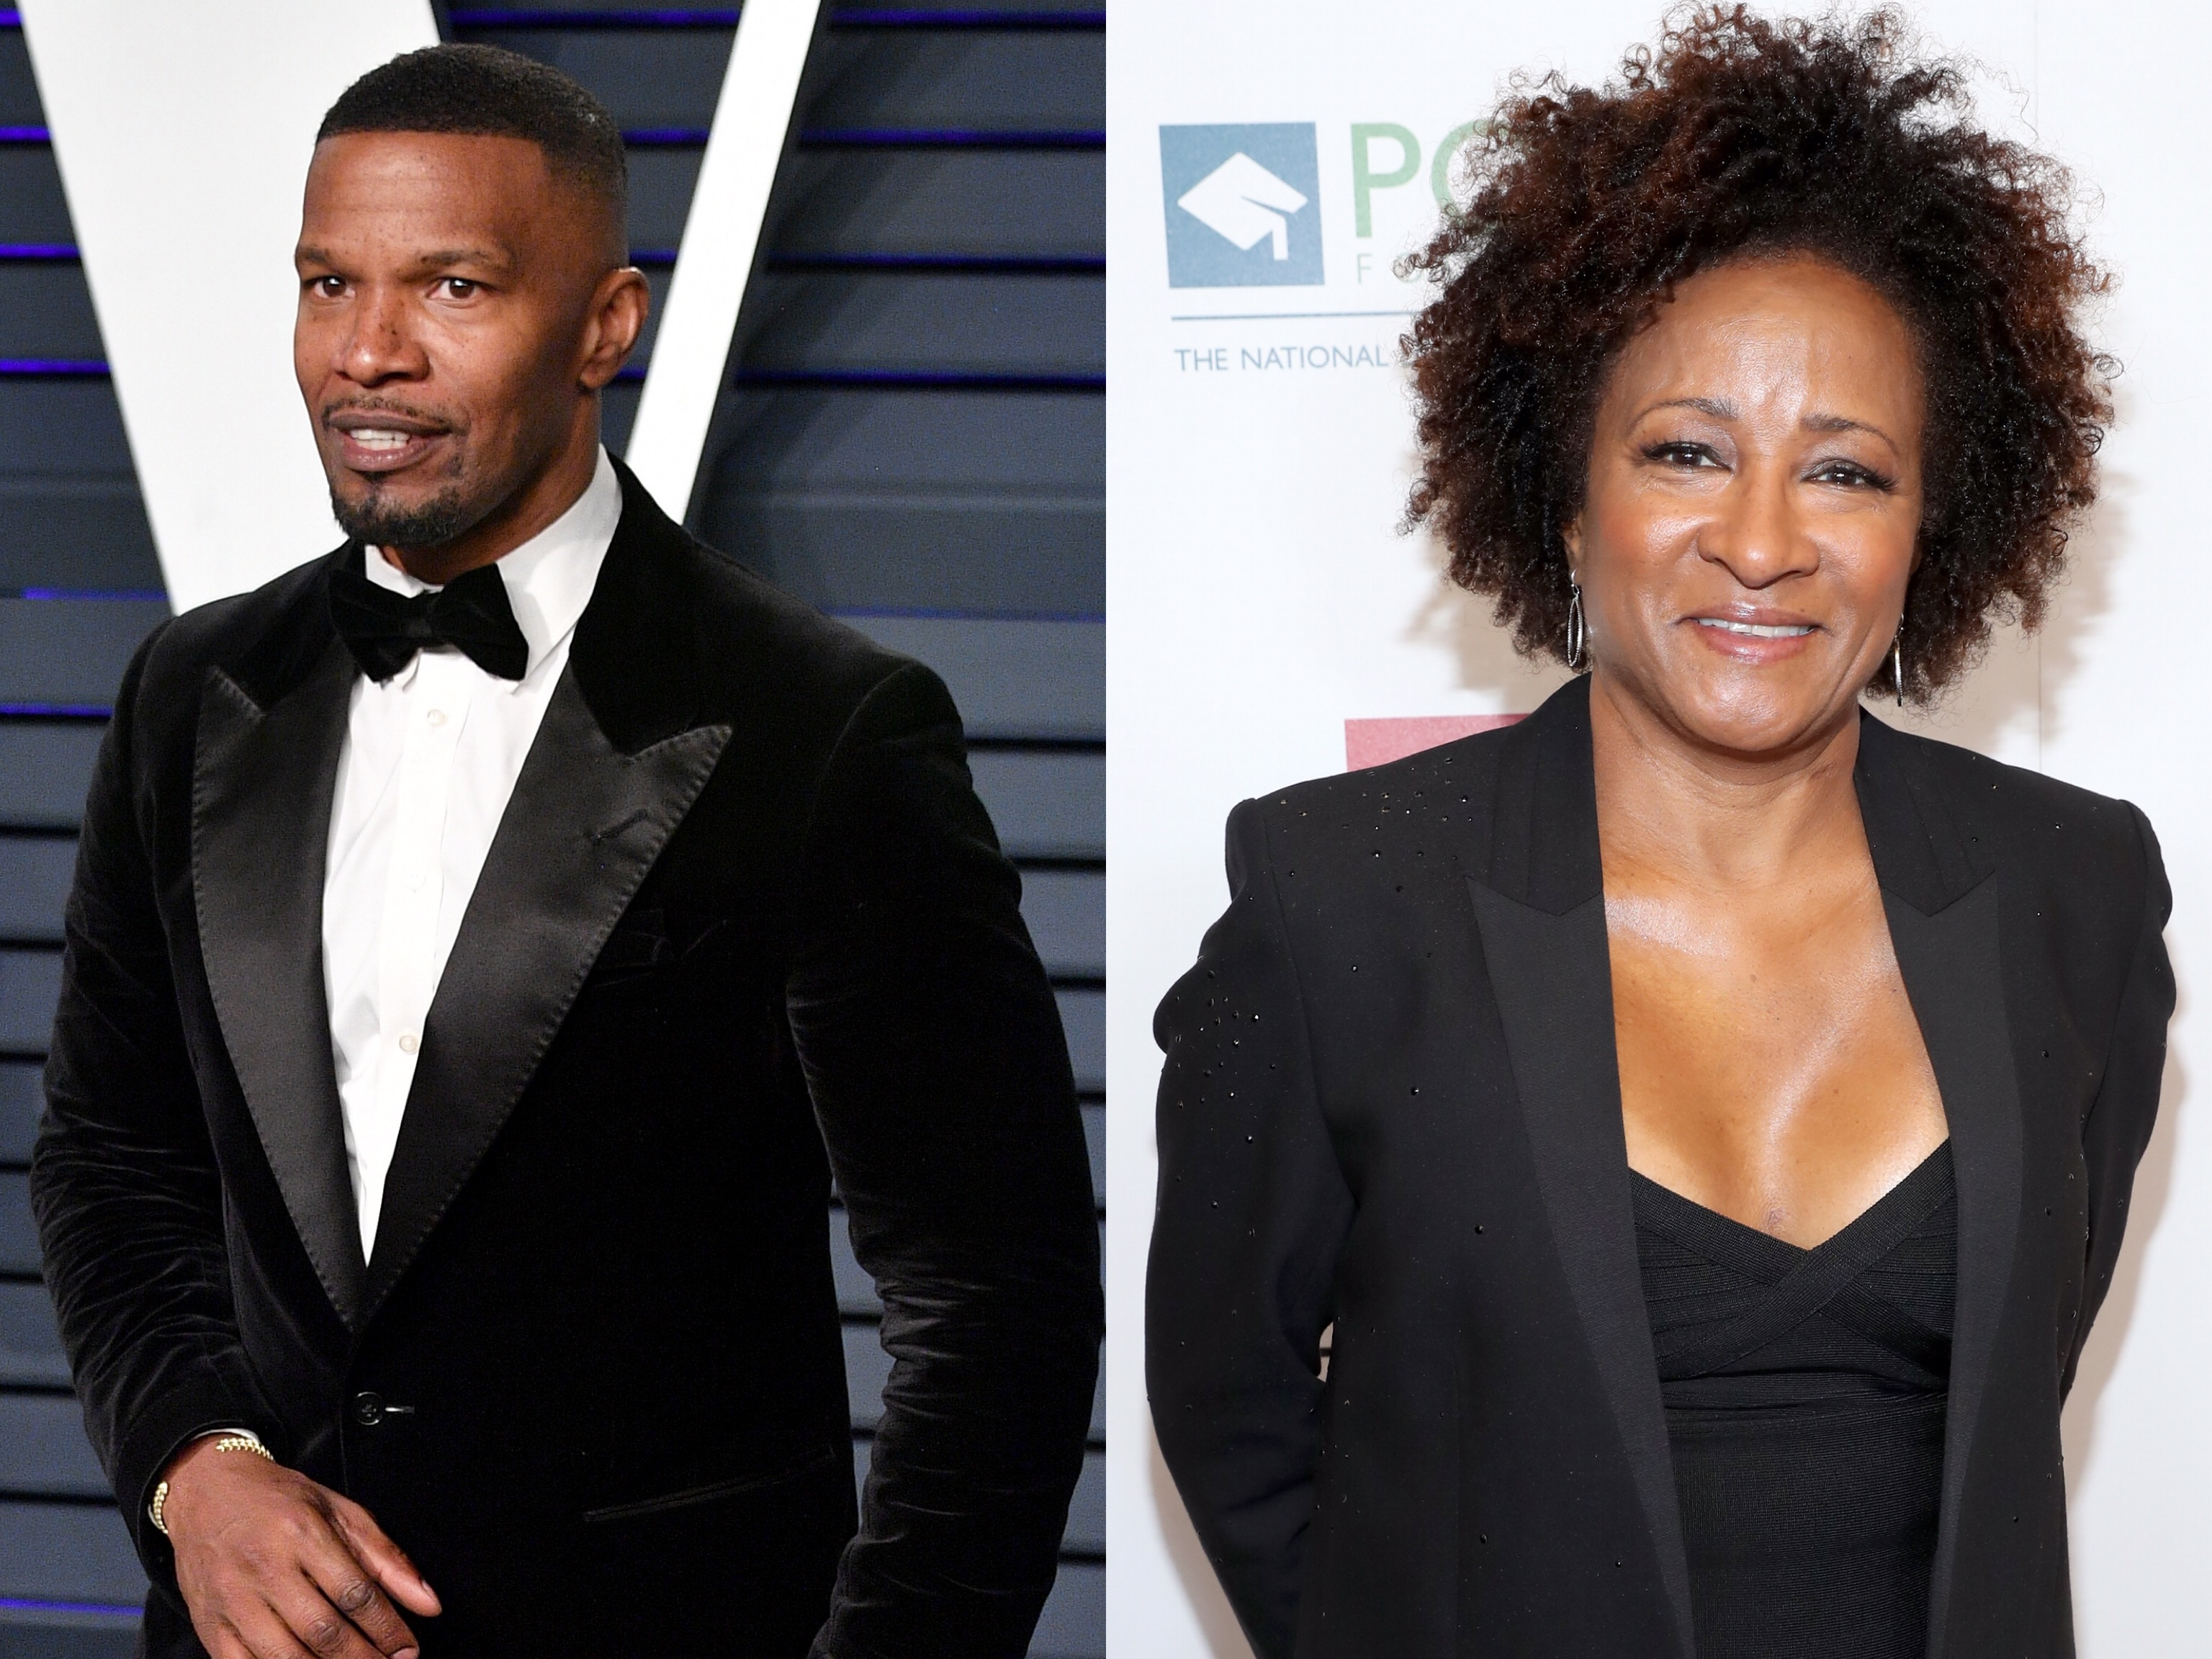 Jamie Foxx And Wanda Sykes To Star In A Live Television Special That Will Pay Tribute To 'The Jeffersons'